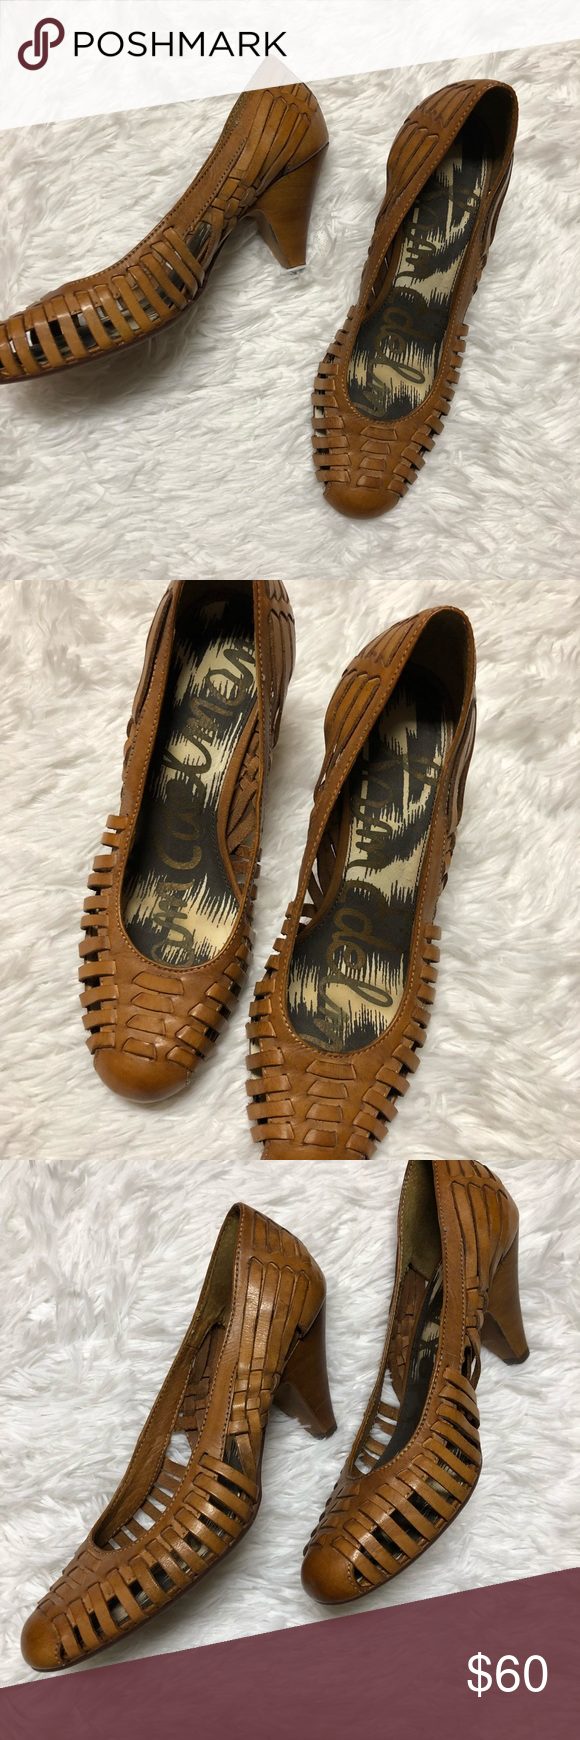 "8385070a0c9a0 Sam Edelman Ferran Woven Leather Heels Leather upper. Wooden heels. Approx.  3"" Sam Edelman Shoes"